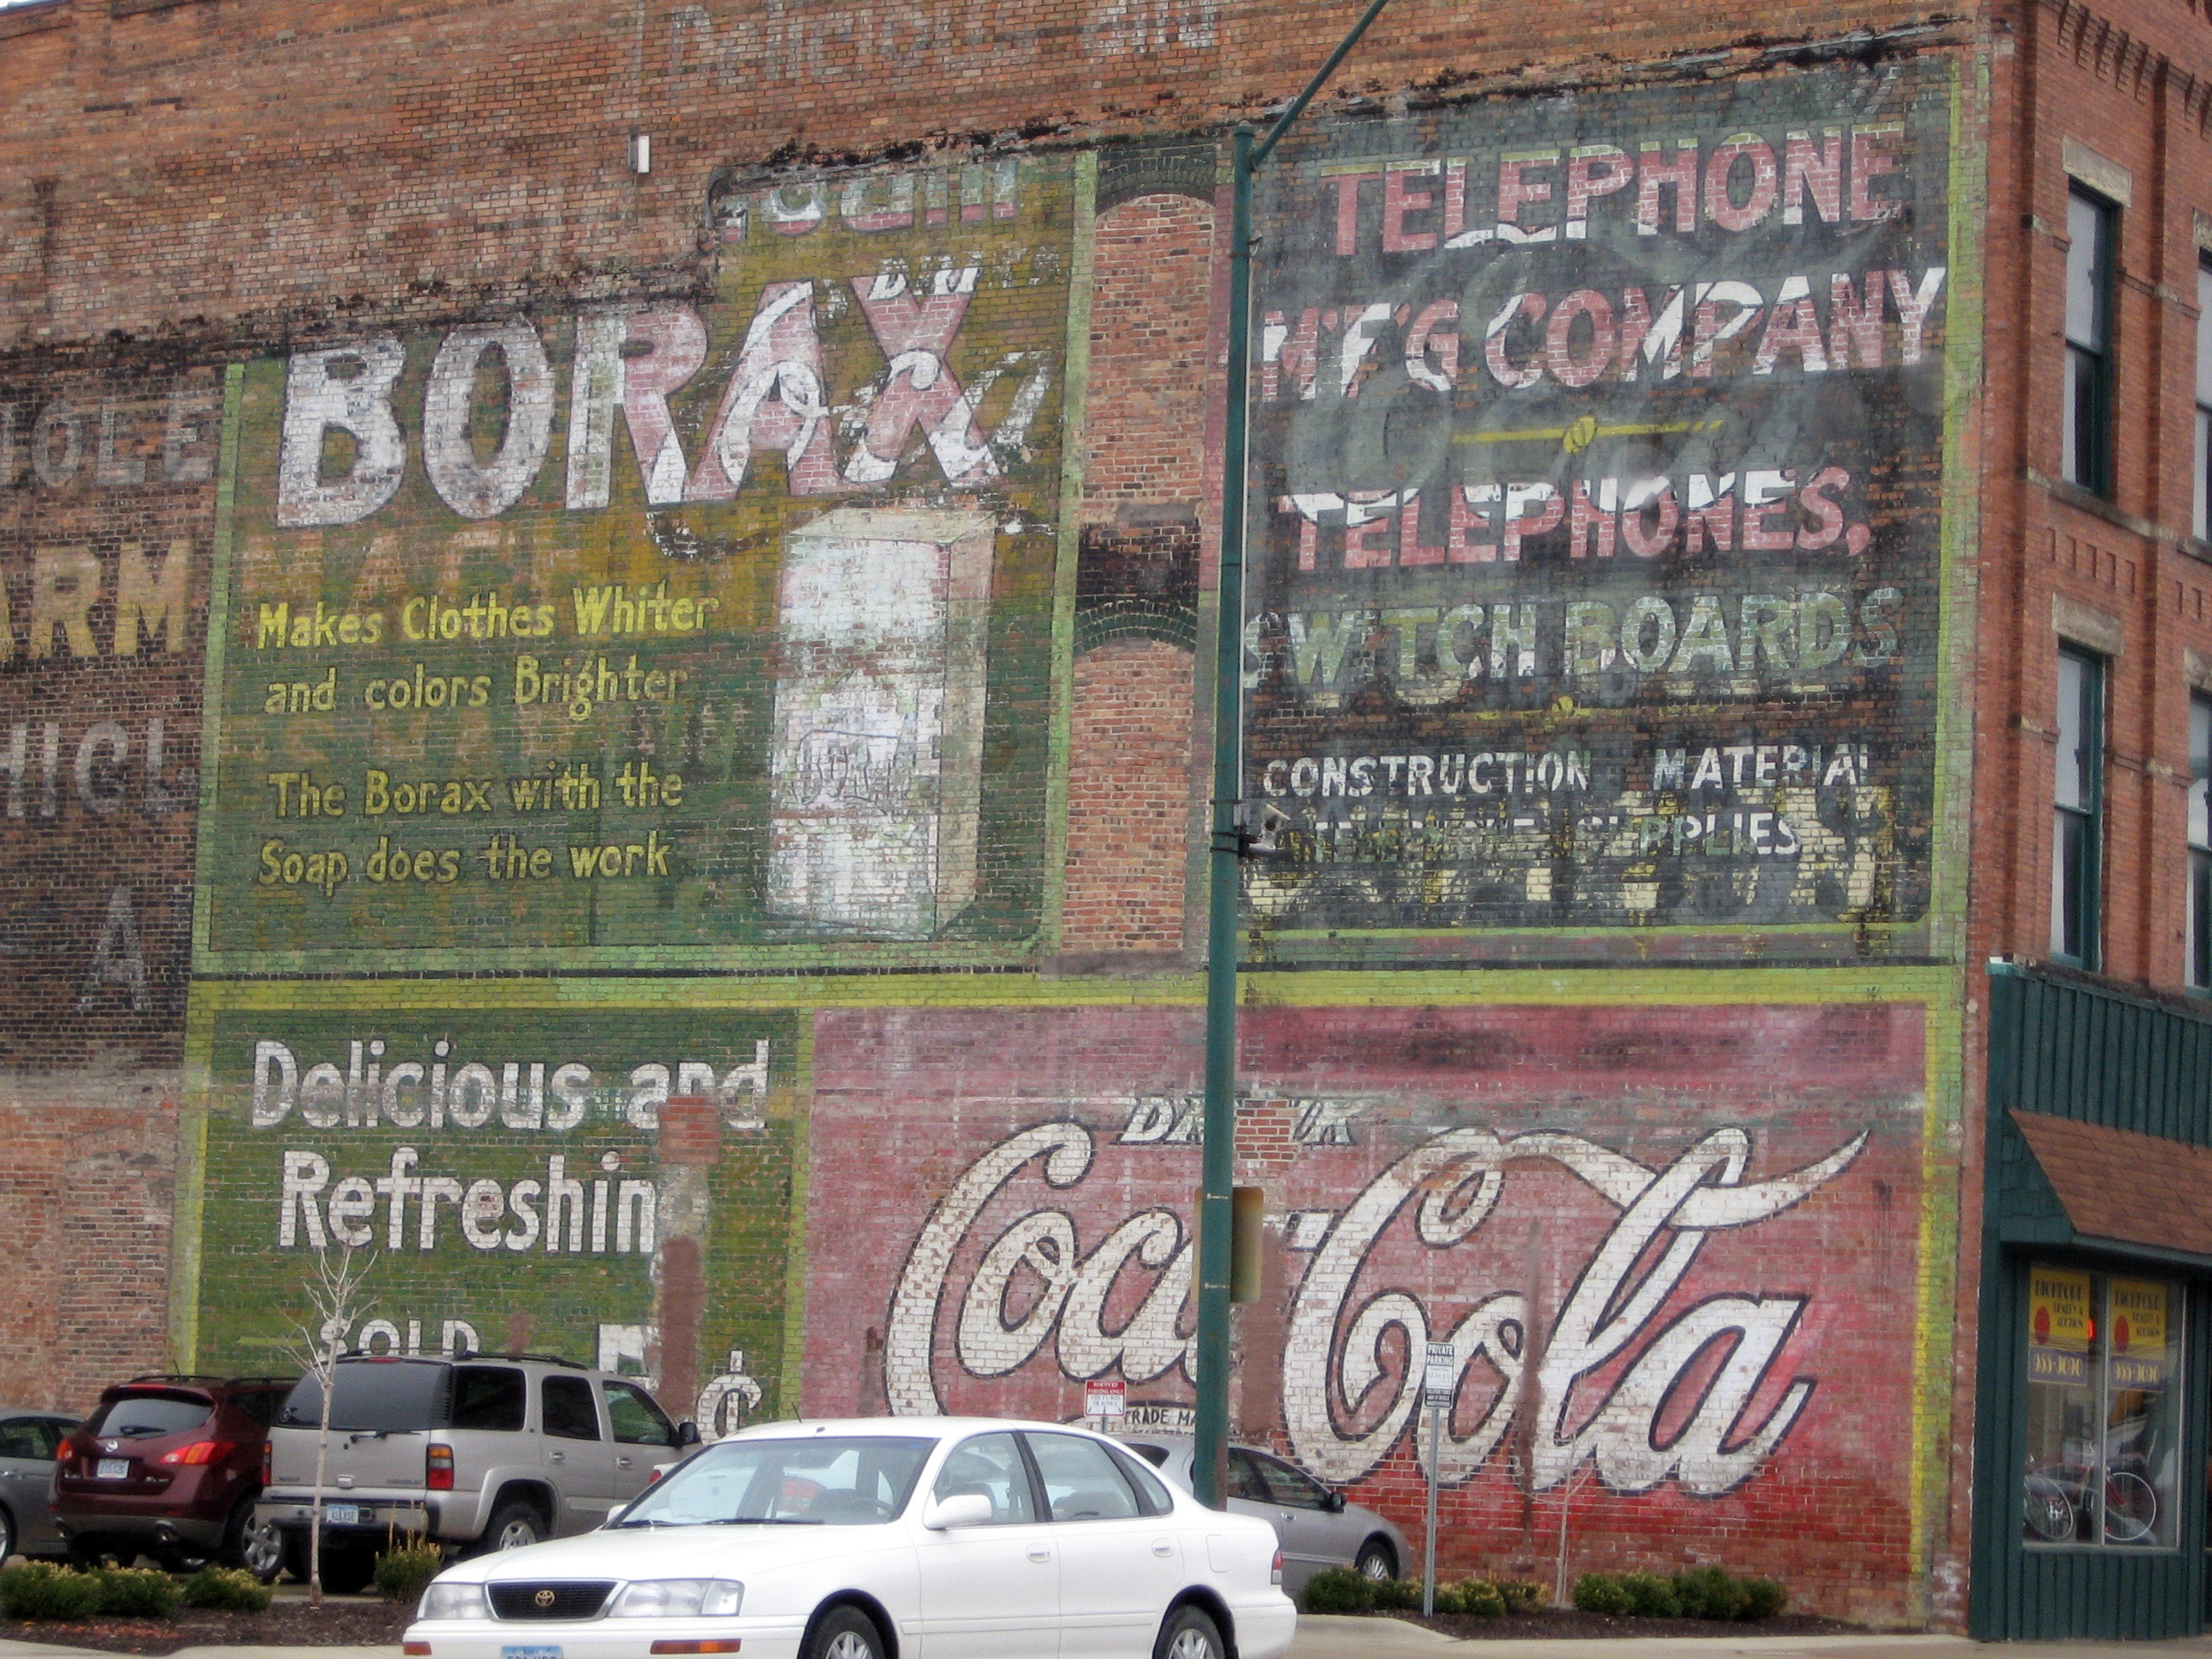 Ghost sign photo